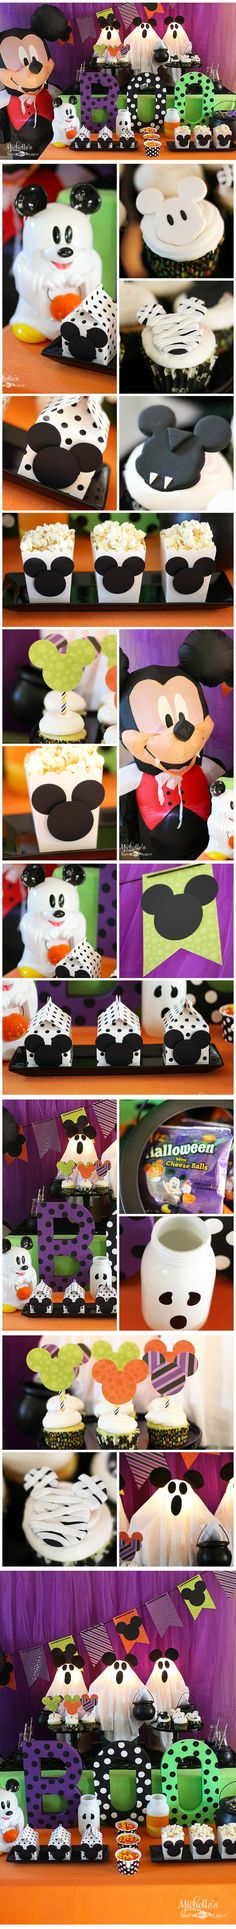 Trick-Or-Treat Love Mickey and Halloween? Why not celebrate Halloween Week with a Mickey Halloween Party! I really appreciate the ghosts wearing Mickey Mouse ears! Easy way to decorate? Cover with Halloween paper and add black Mickey icons and you have a Halloween Birthday Decorations, Halloween 1st Birthdays, Halloween First Birthday, Disney Halloween Parties, Mickey Mouse Halloween, Halloween Party Games, Mickey Y Minnie, Halloween Goodies, Mickey Party